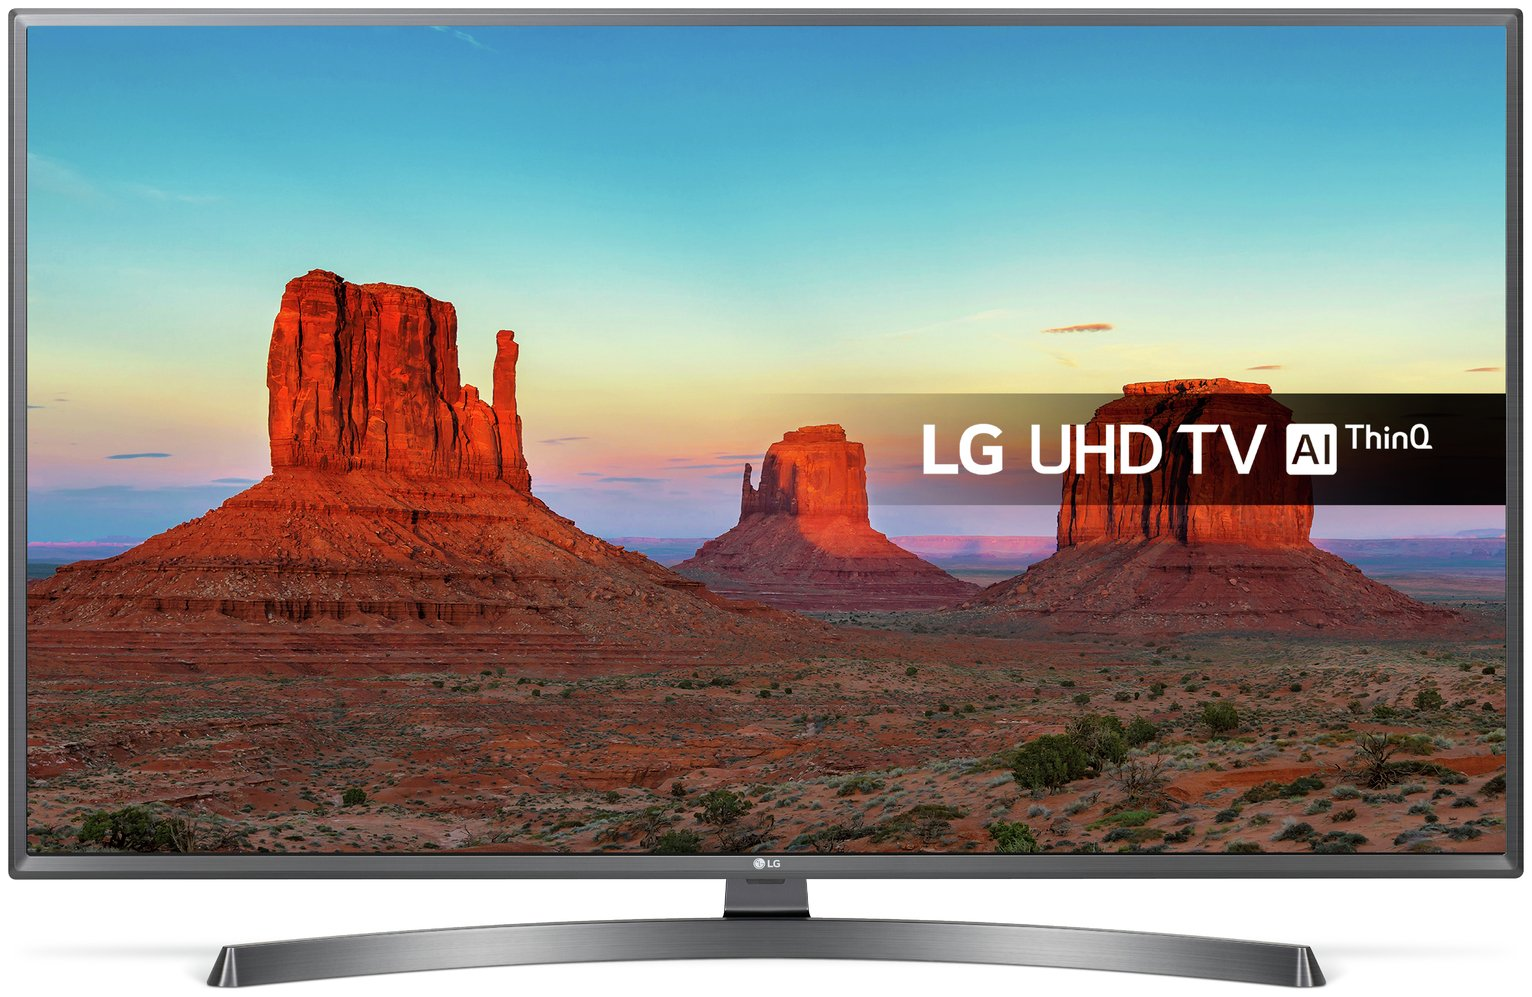 LG 65 Inch 65UK6750PLD Smart Ultra HD TV with HDR